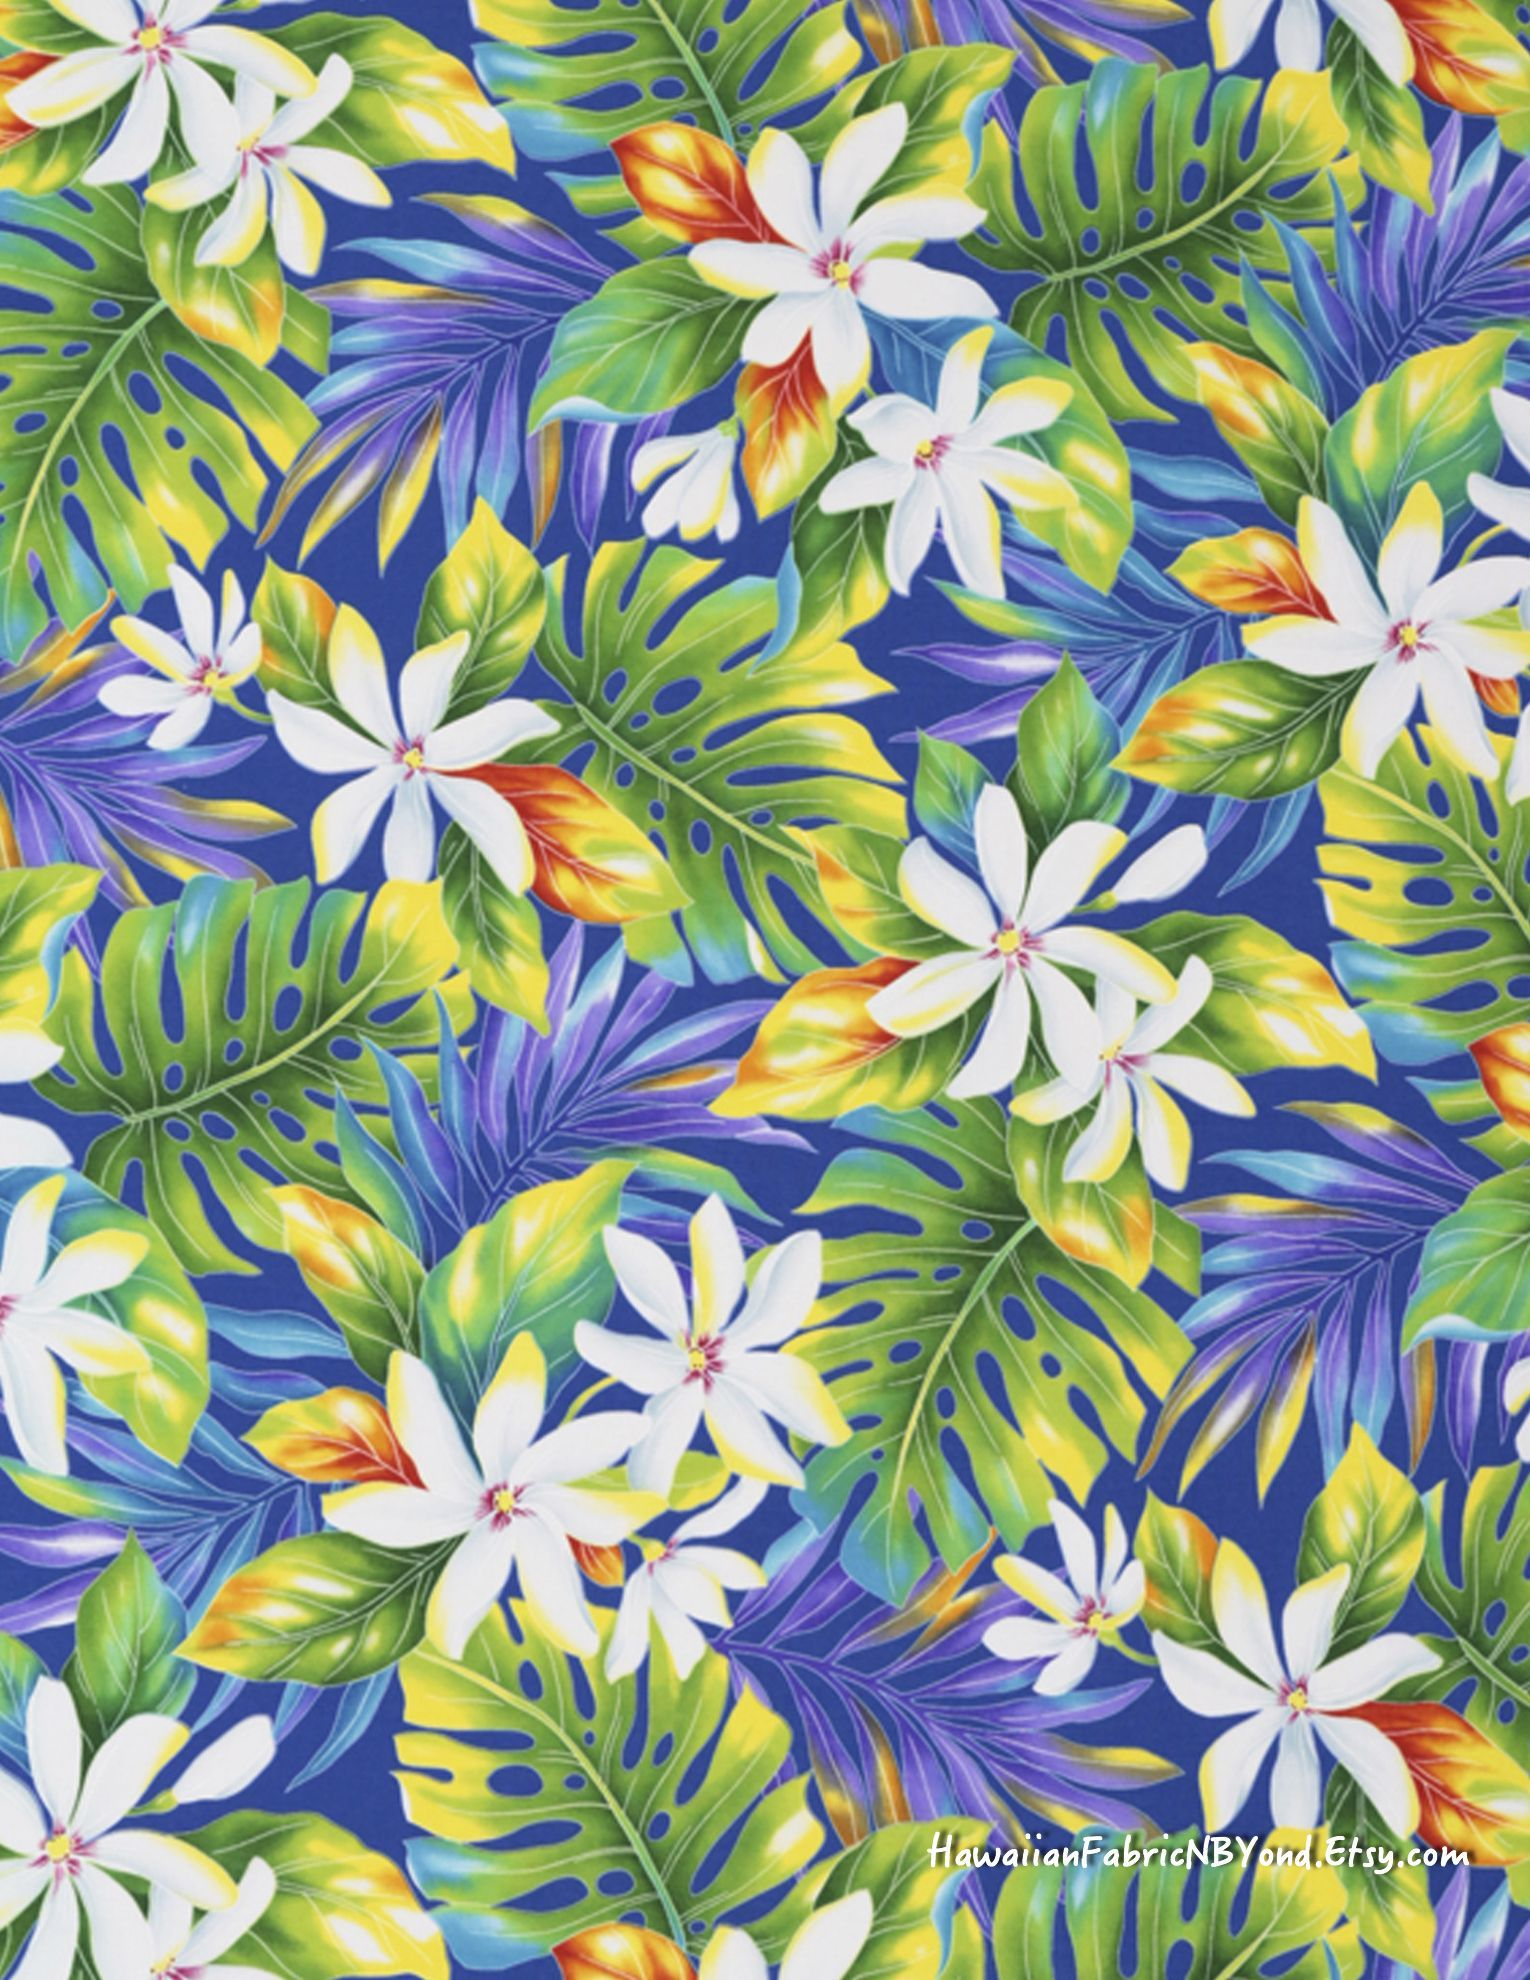 Tropical Fabric White Tiare Flowers Amidst Green, Blue, And Yellow